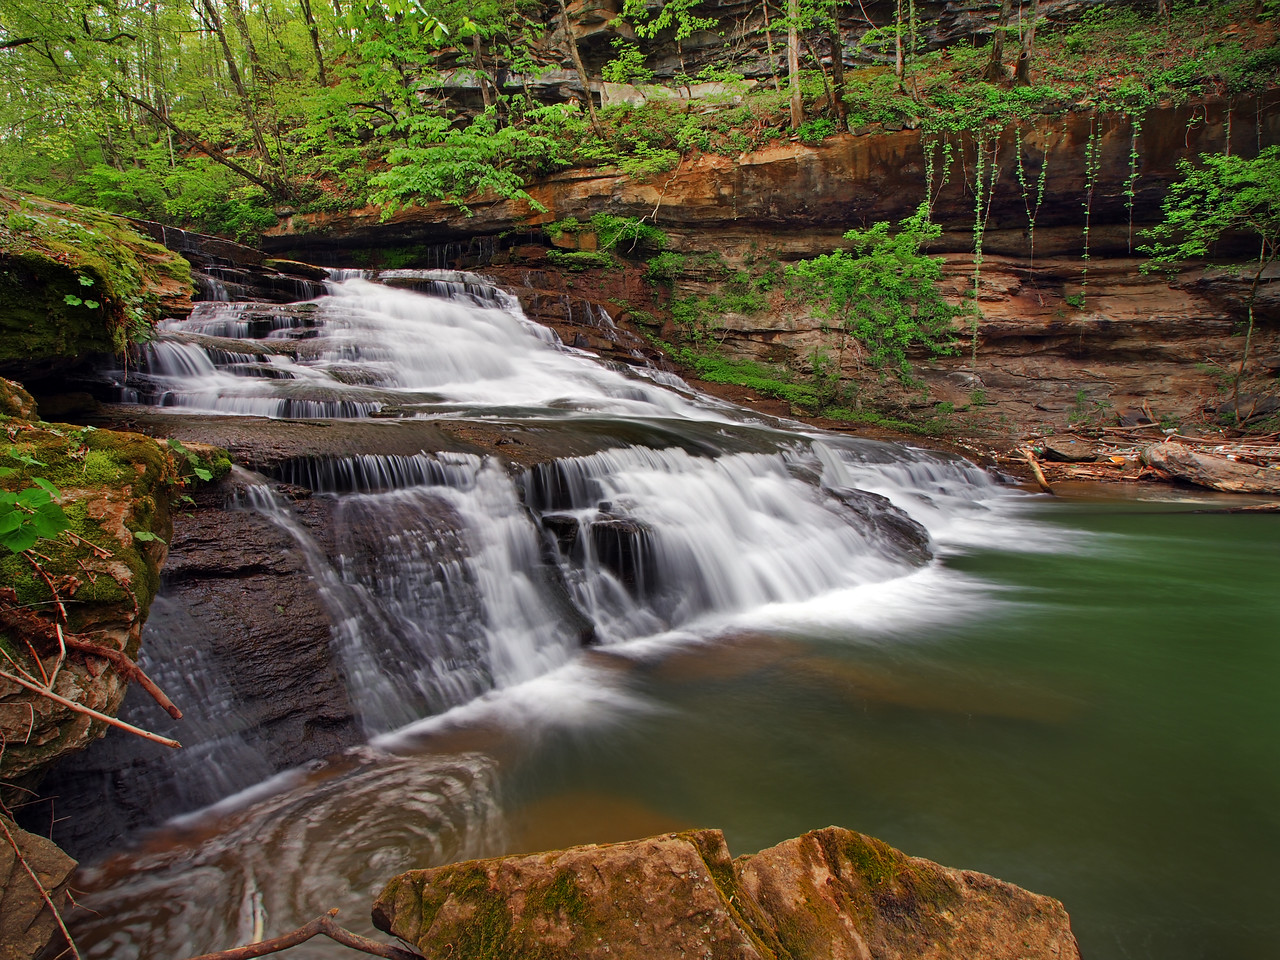 Towne Creek Falls - Lower Section - 1